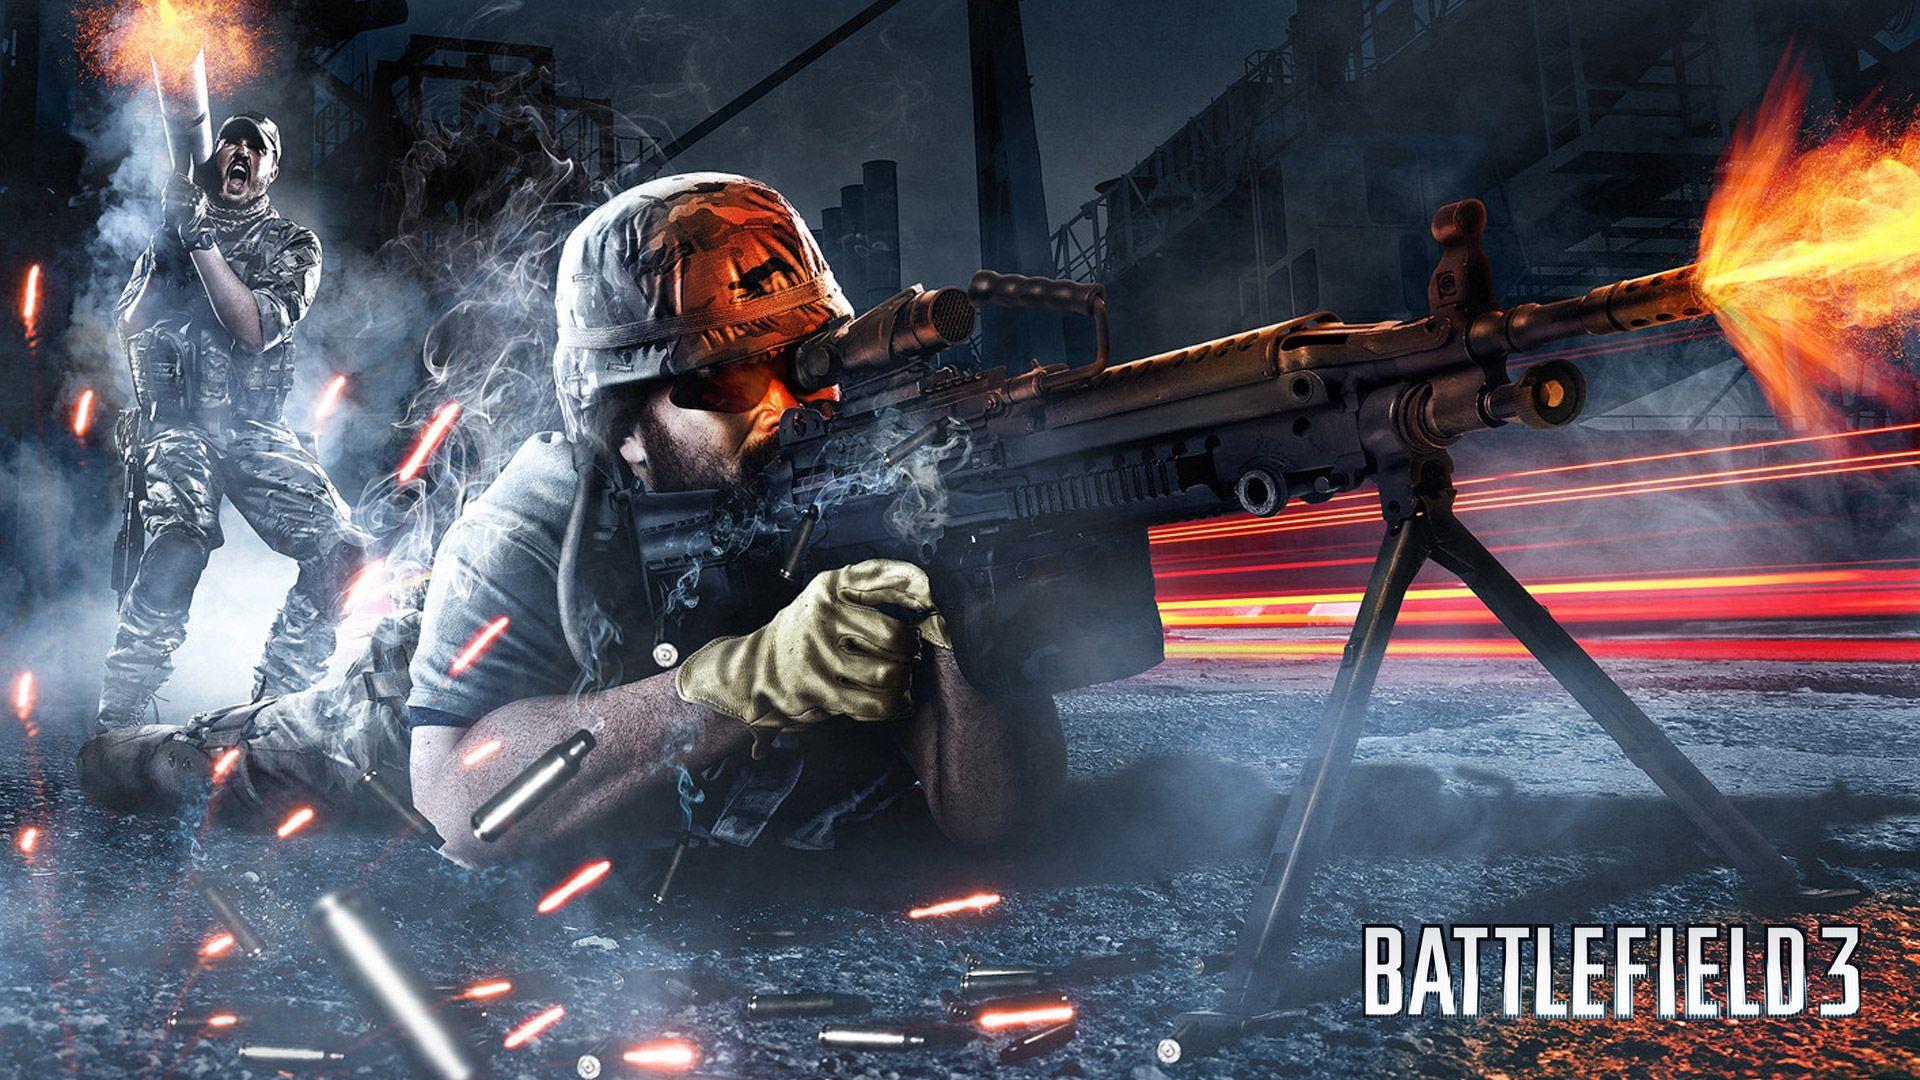 Battlefield 3 Wallpaper 1920x1080